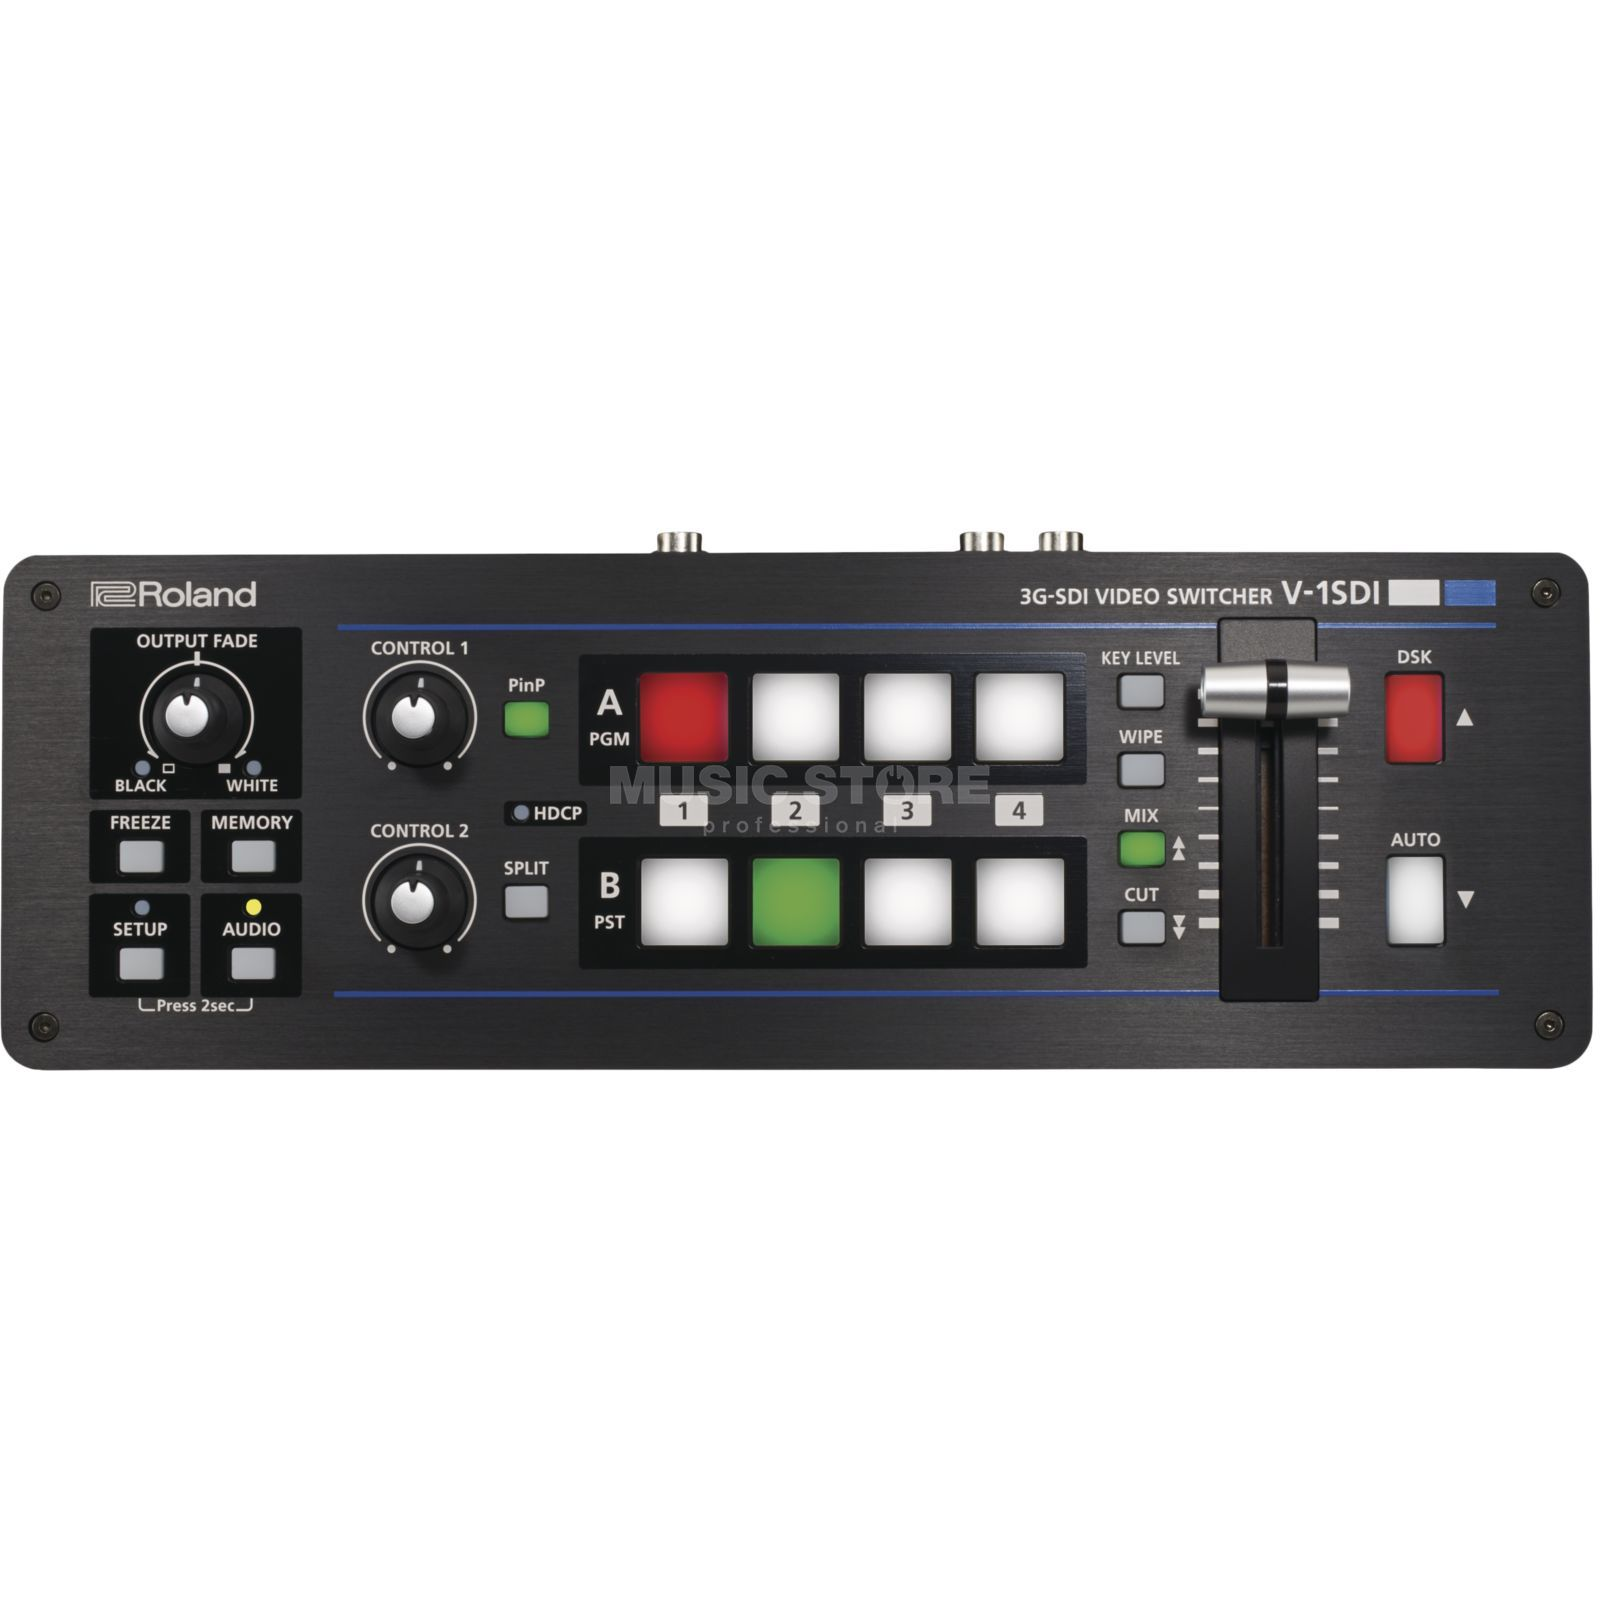 Roland V-1SDI 3G-SDI Video Switcher Product Image